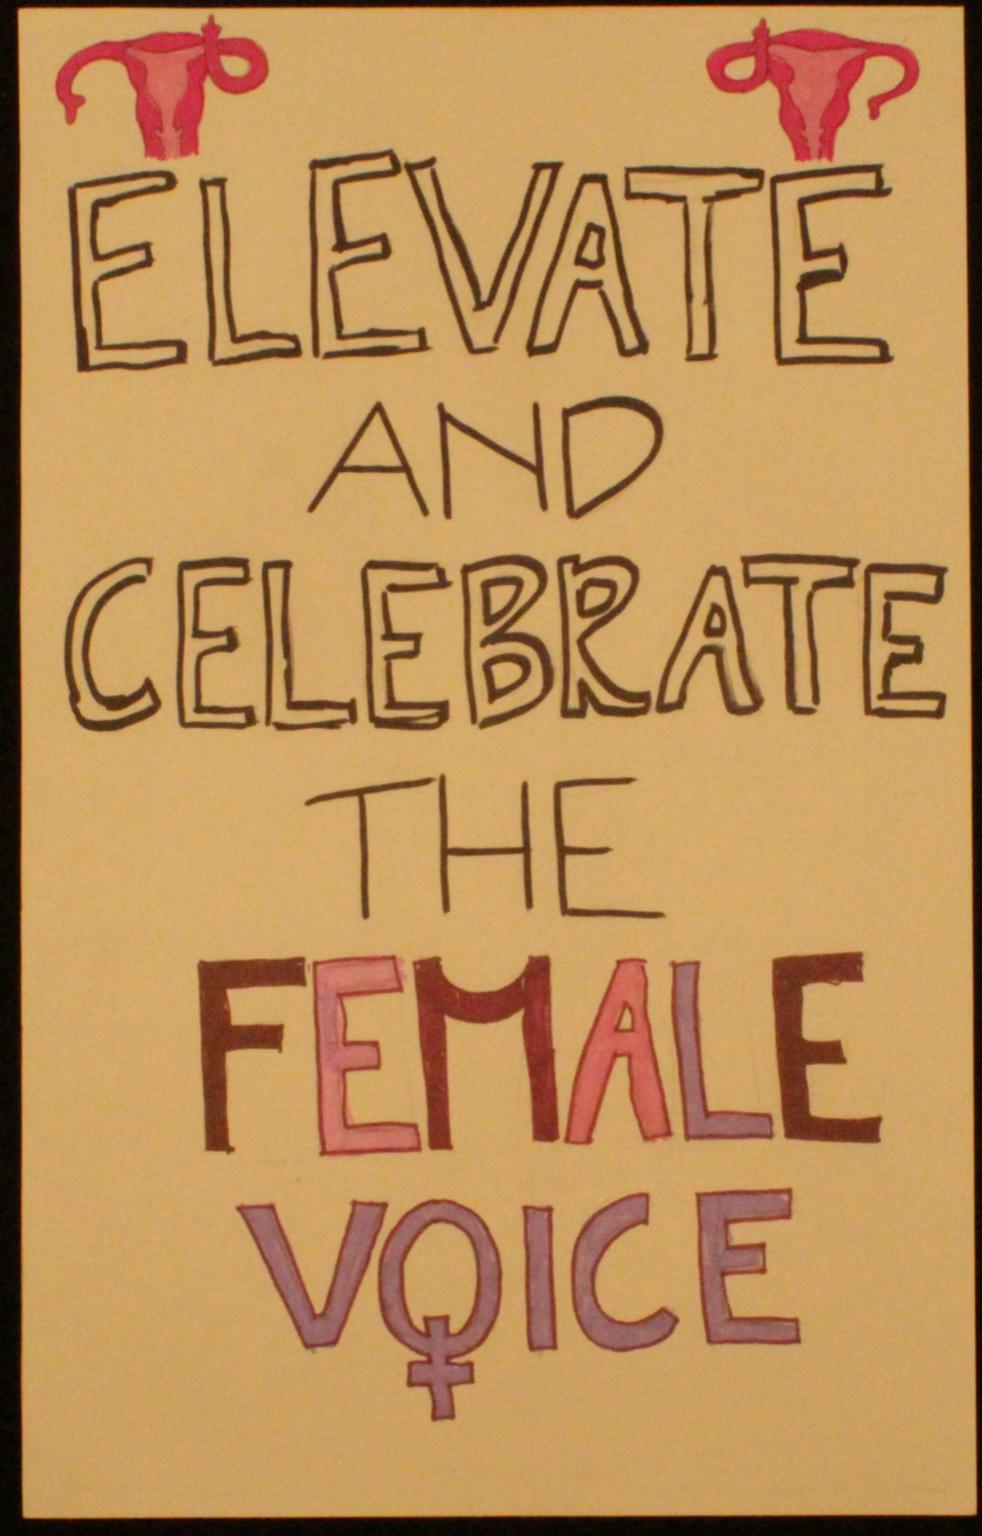 Poster from 2018 Women's March